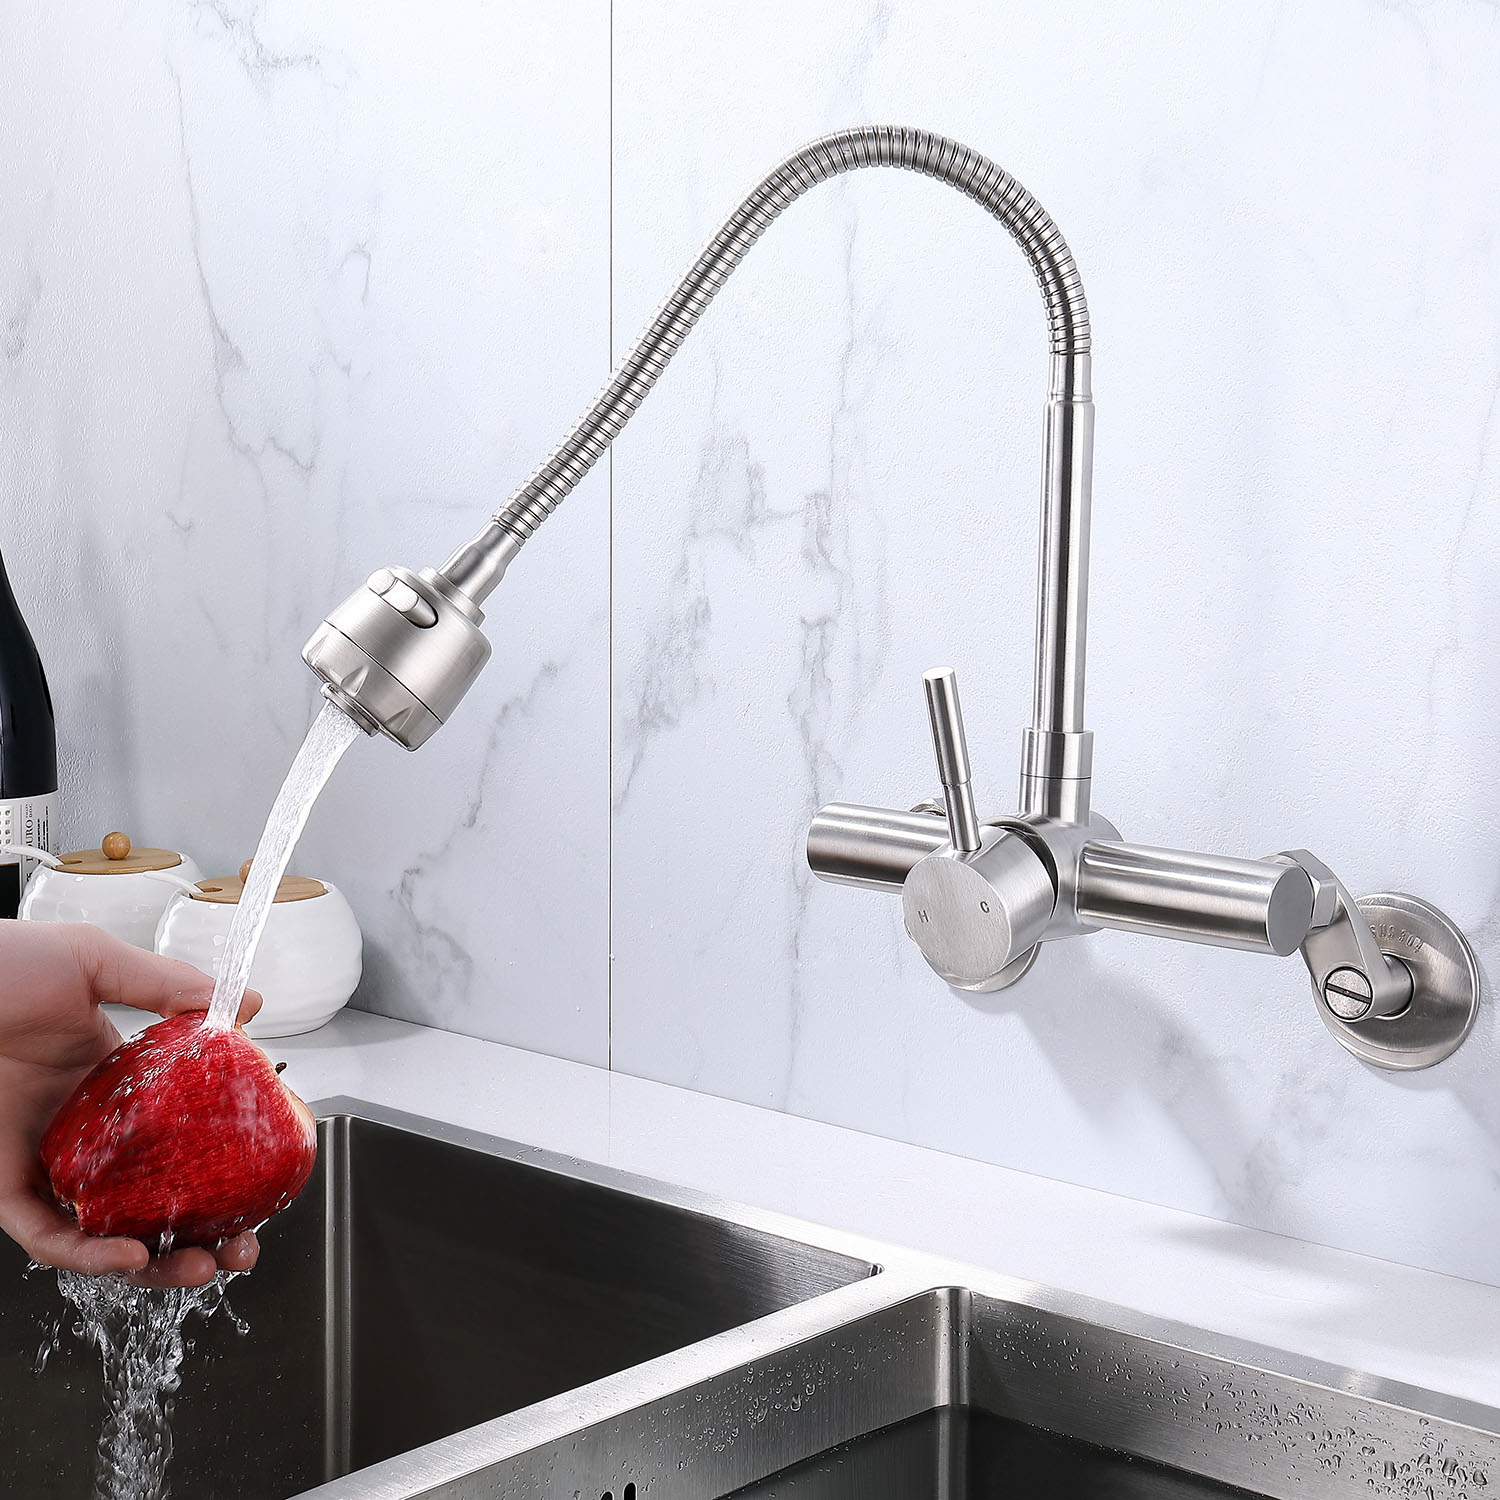 Wall Mounted Stainless Steel Mixer Tap Kitchen Sink Faucet